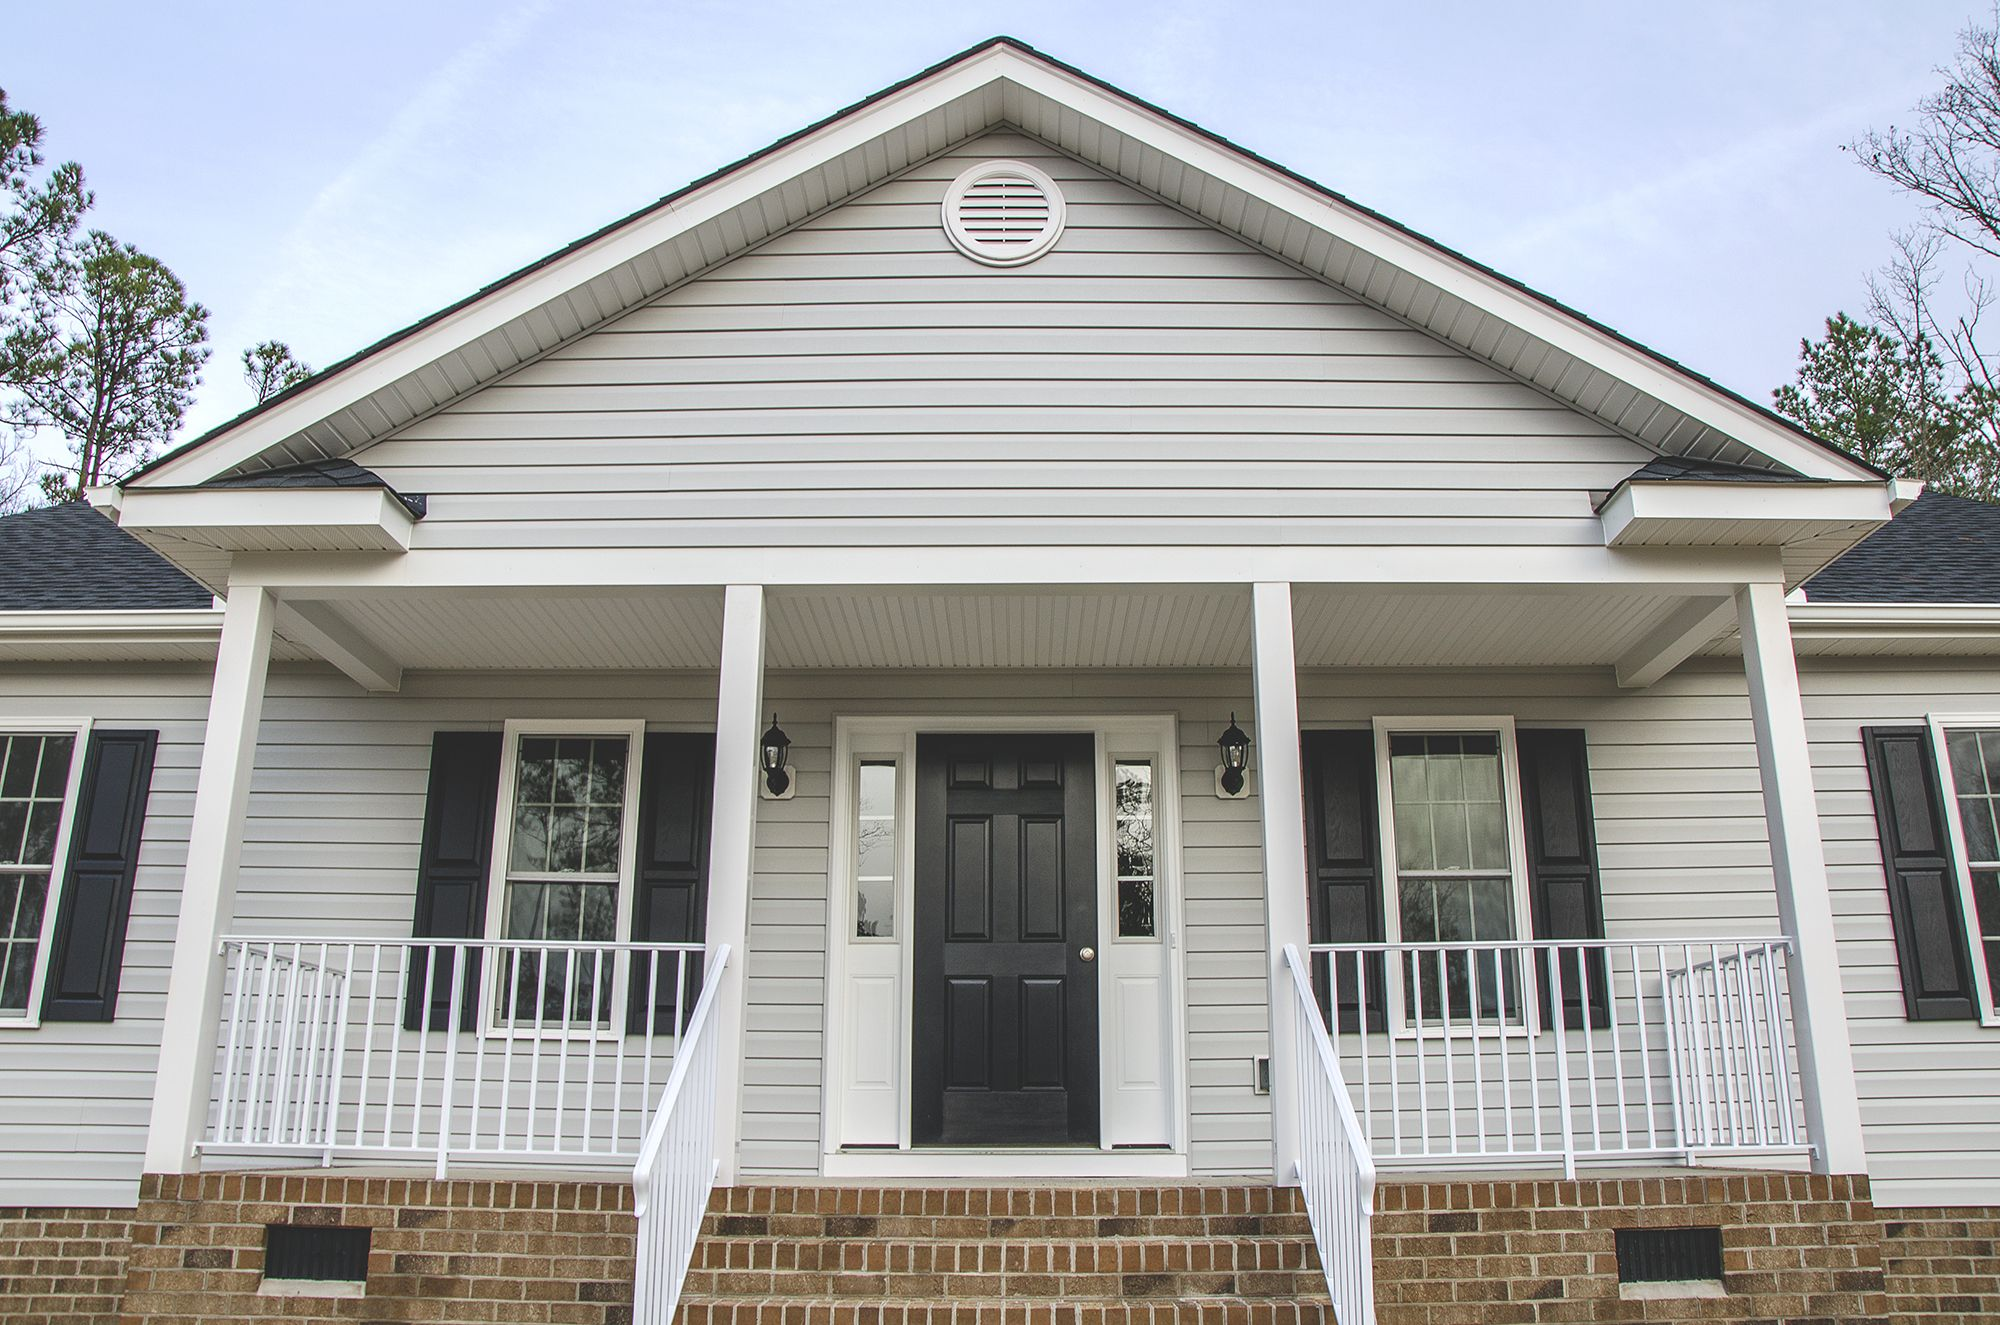 This Custom Home As Gray Vinyl Siding White Trim And Black Accents We Love The Spacious Front Porch C Balducc Custom Home Builders Custom Homes Home Builders